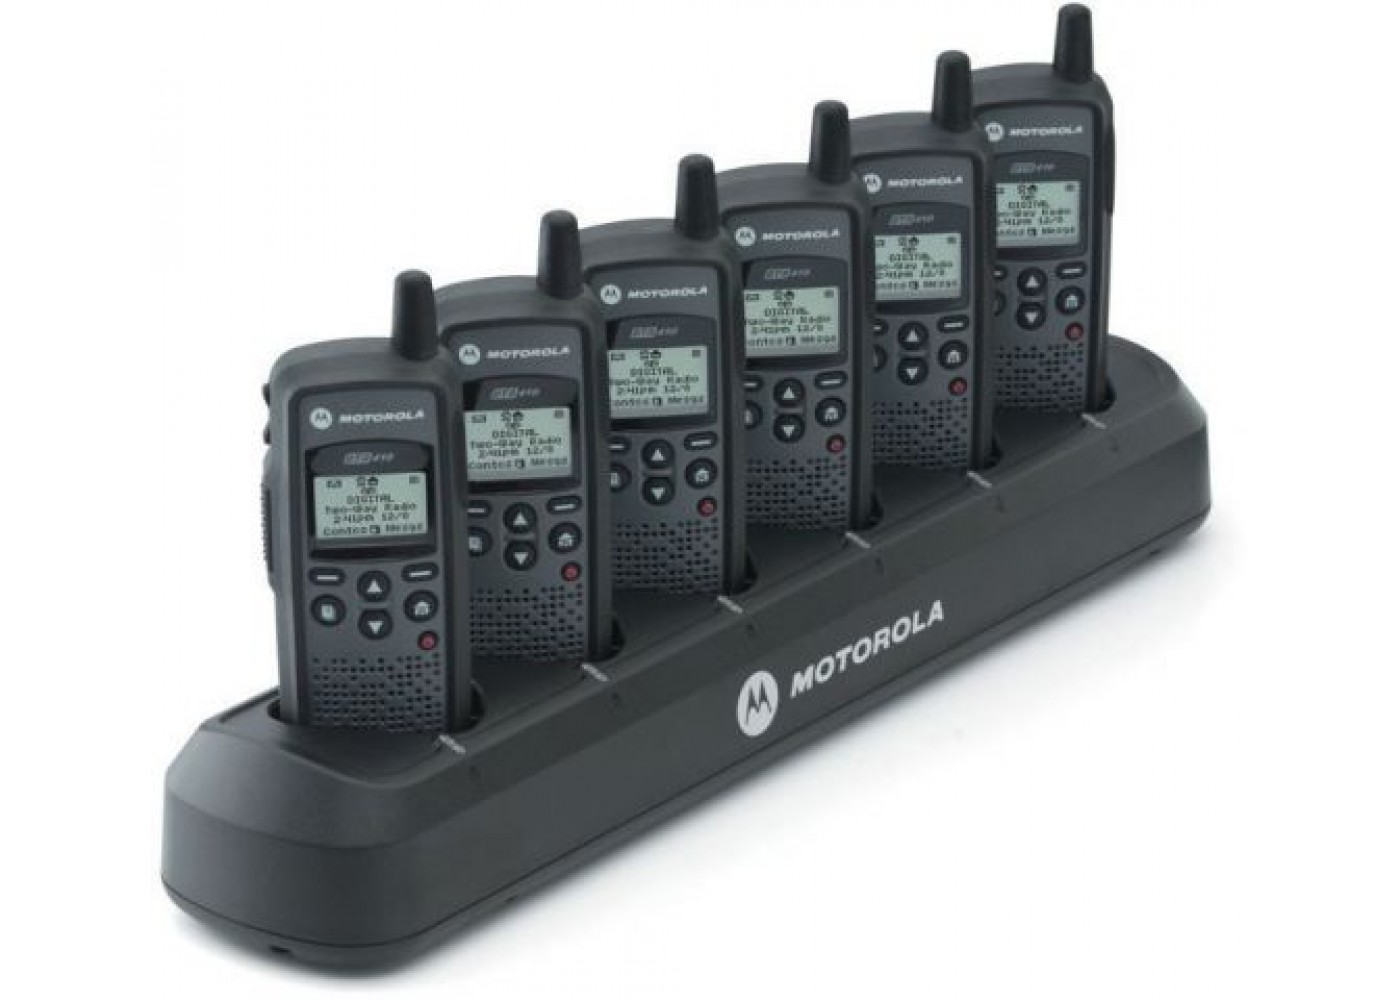 6 Pack Of Motorola DTR650 With Free Bank Charger 900Mhz